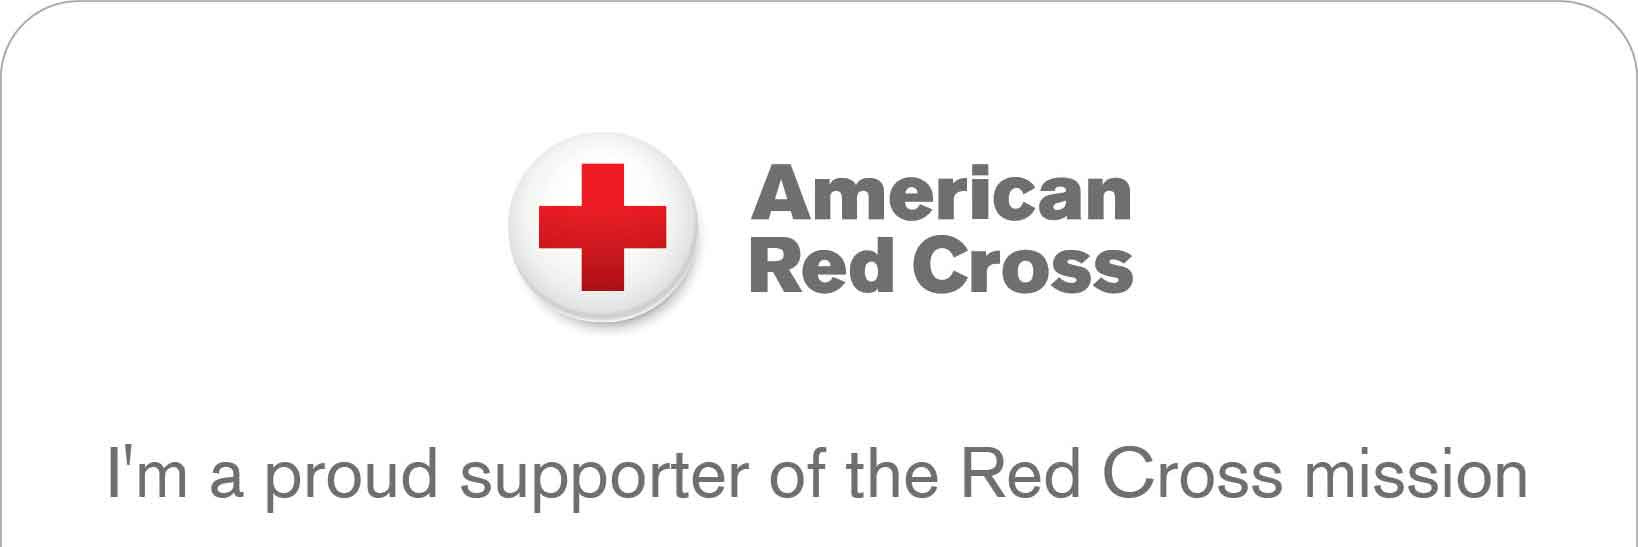 American Red Cross 2019 Supporter Card